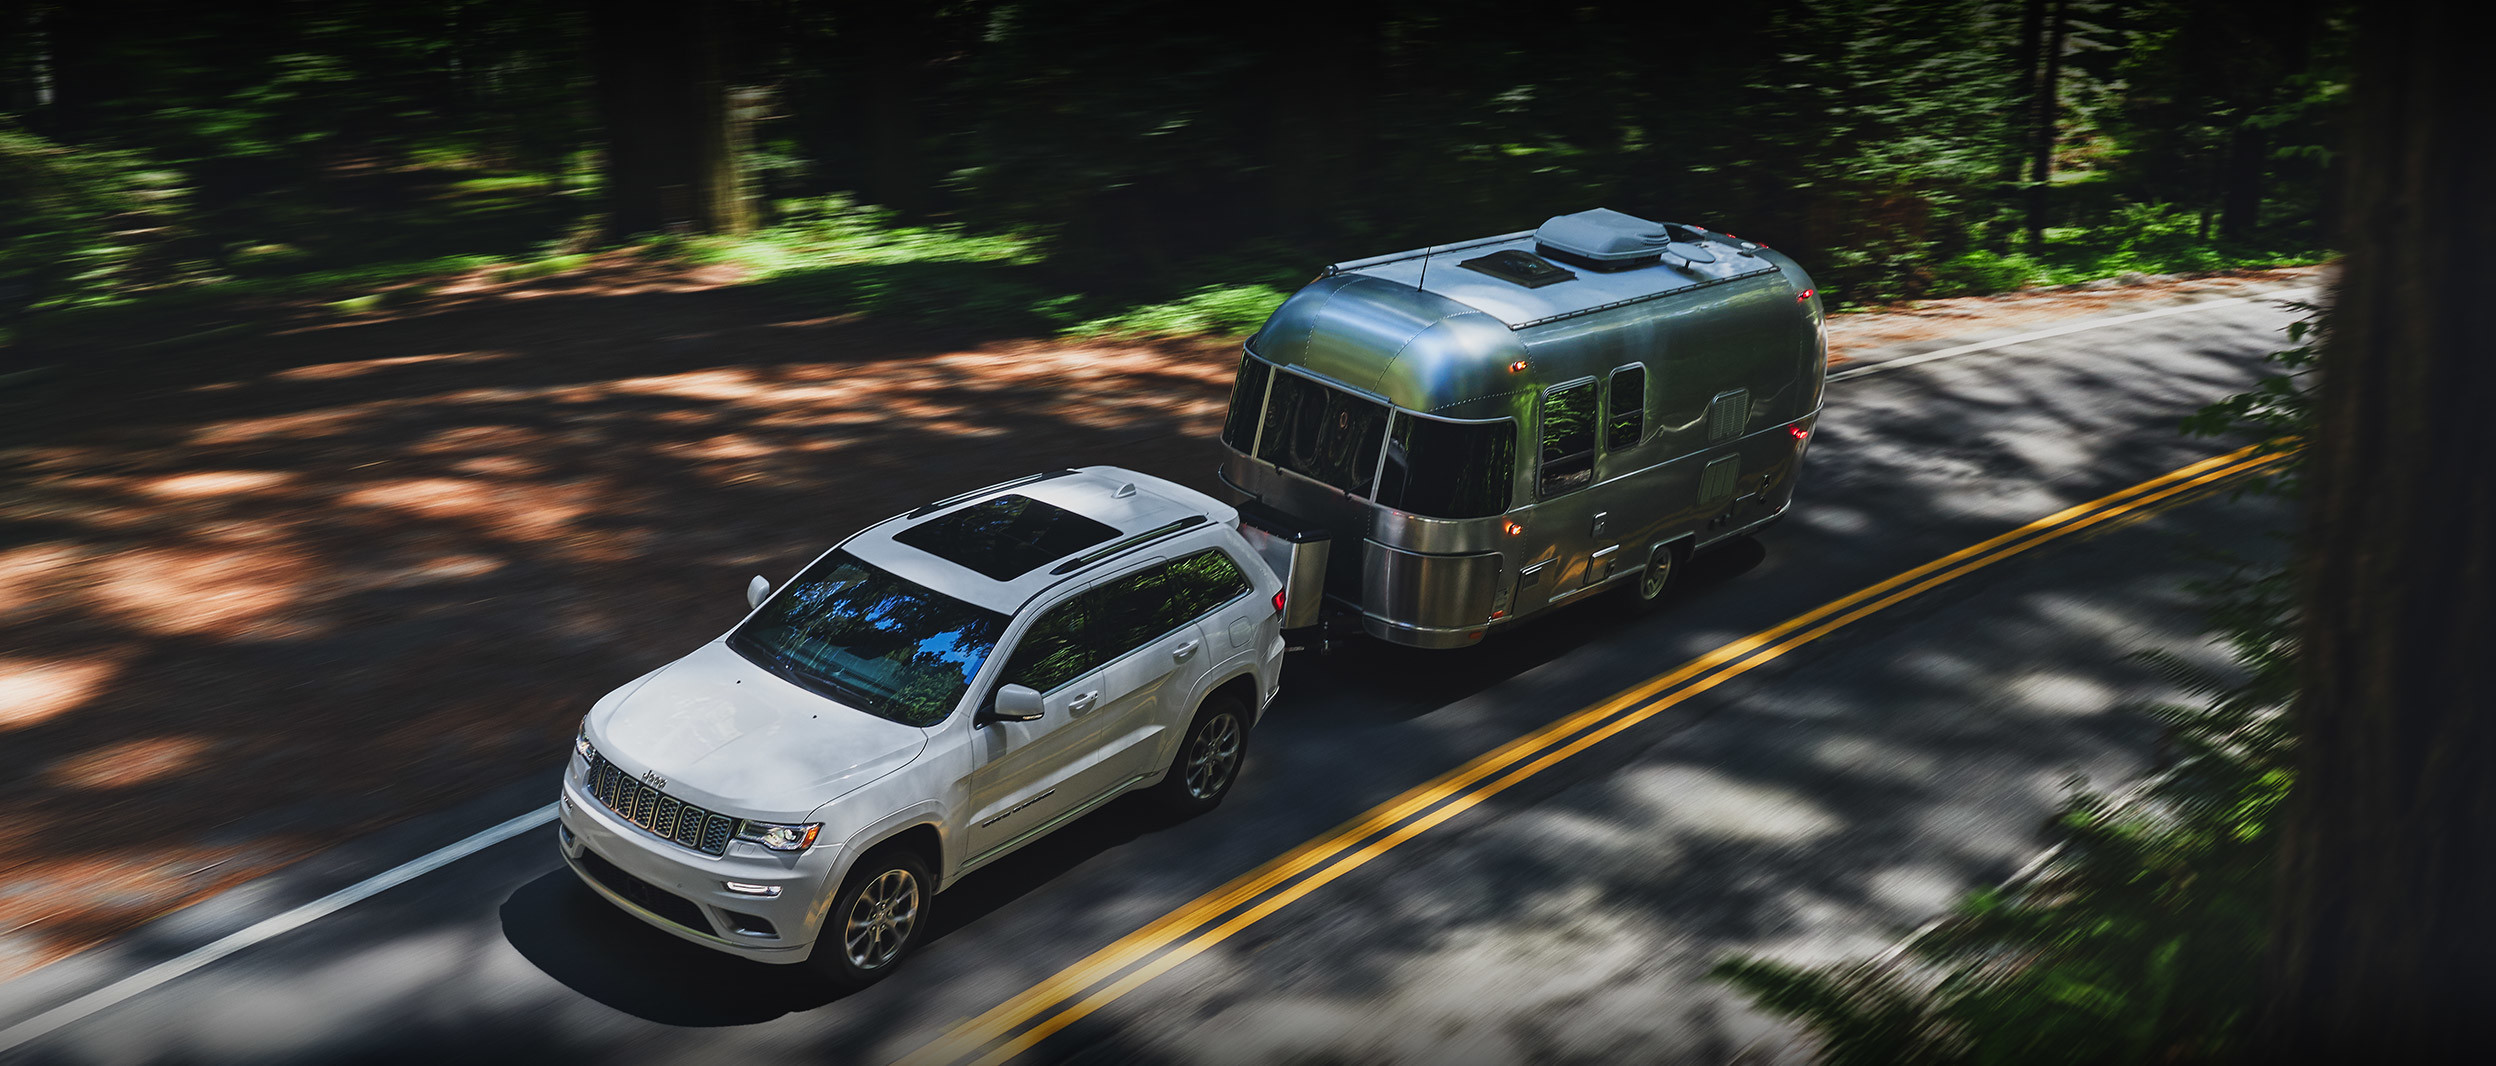 White 2020 Jeep Grand Cherokee towing a large silver RV.